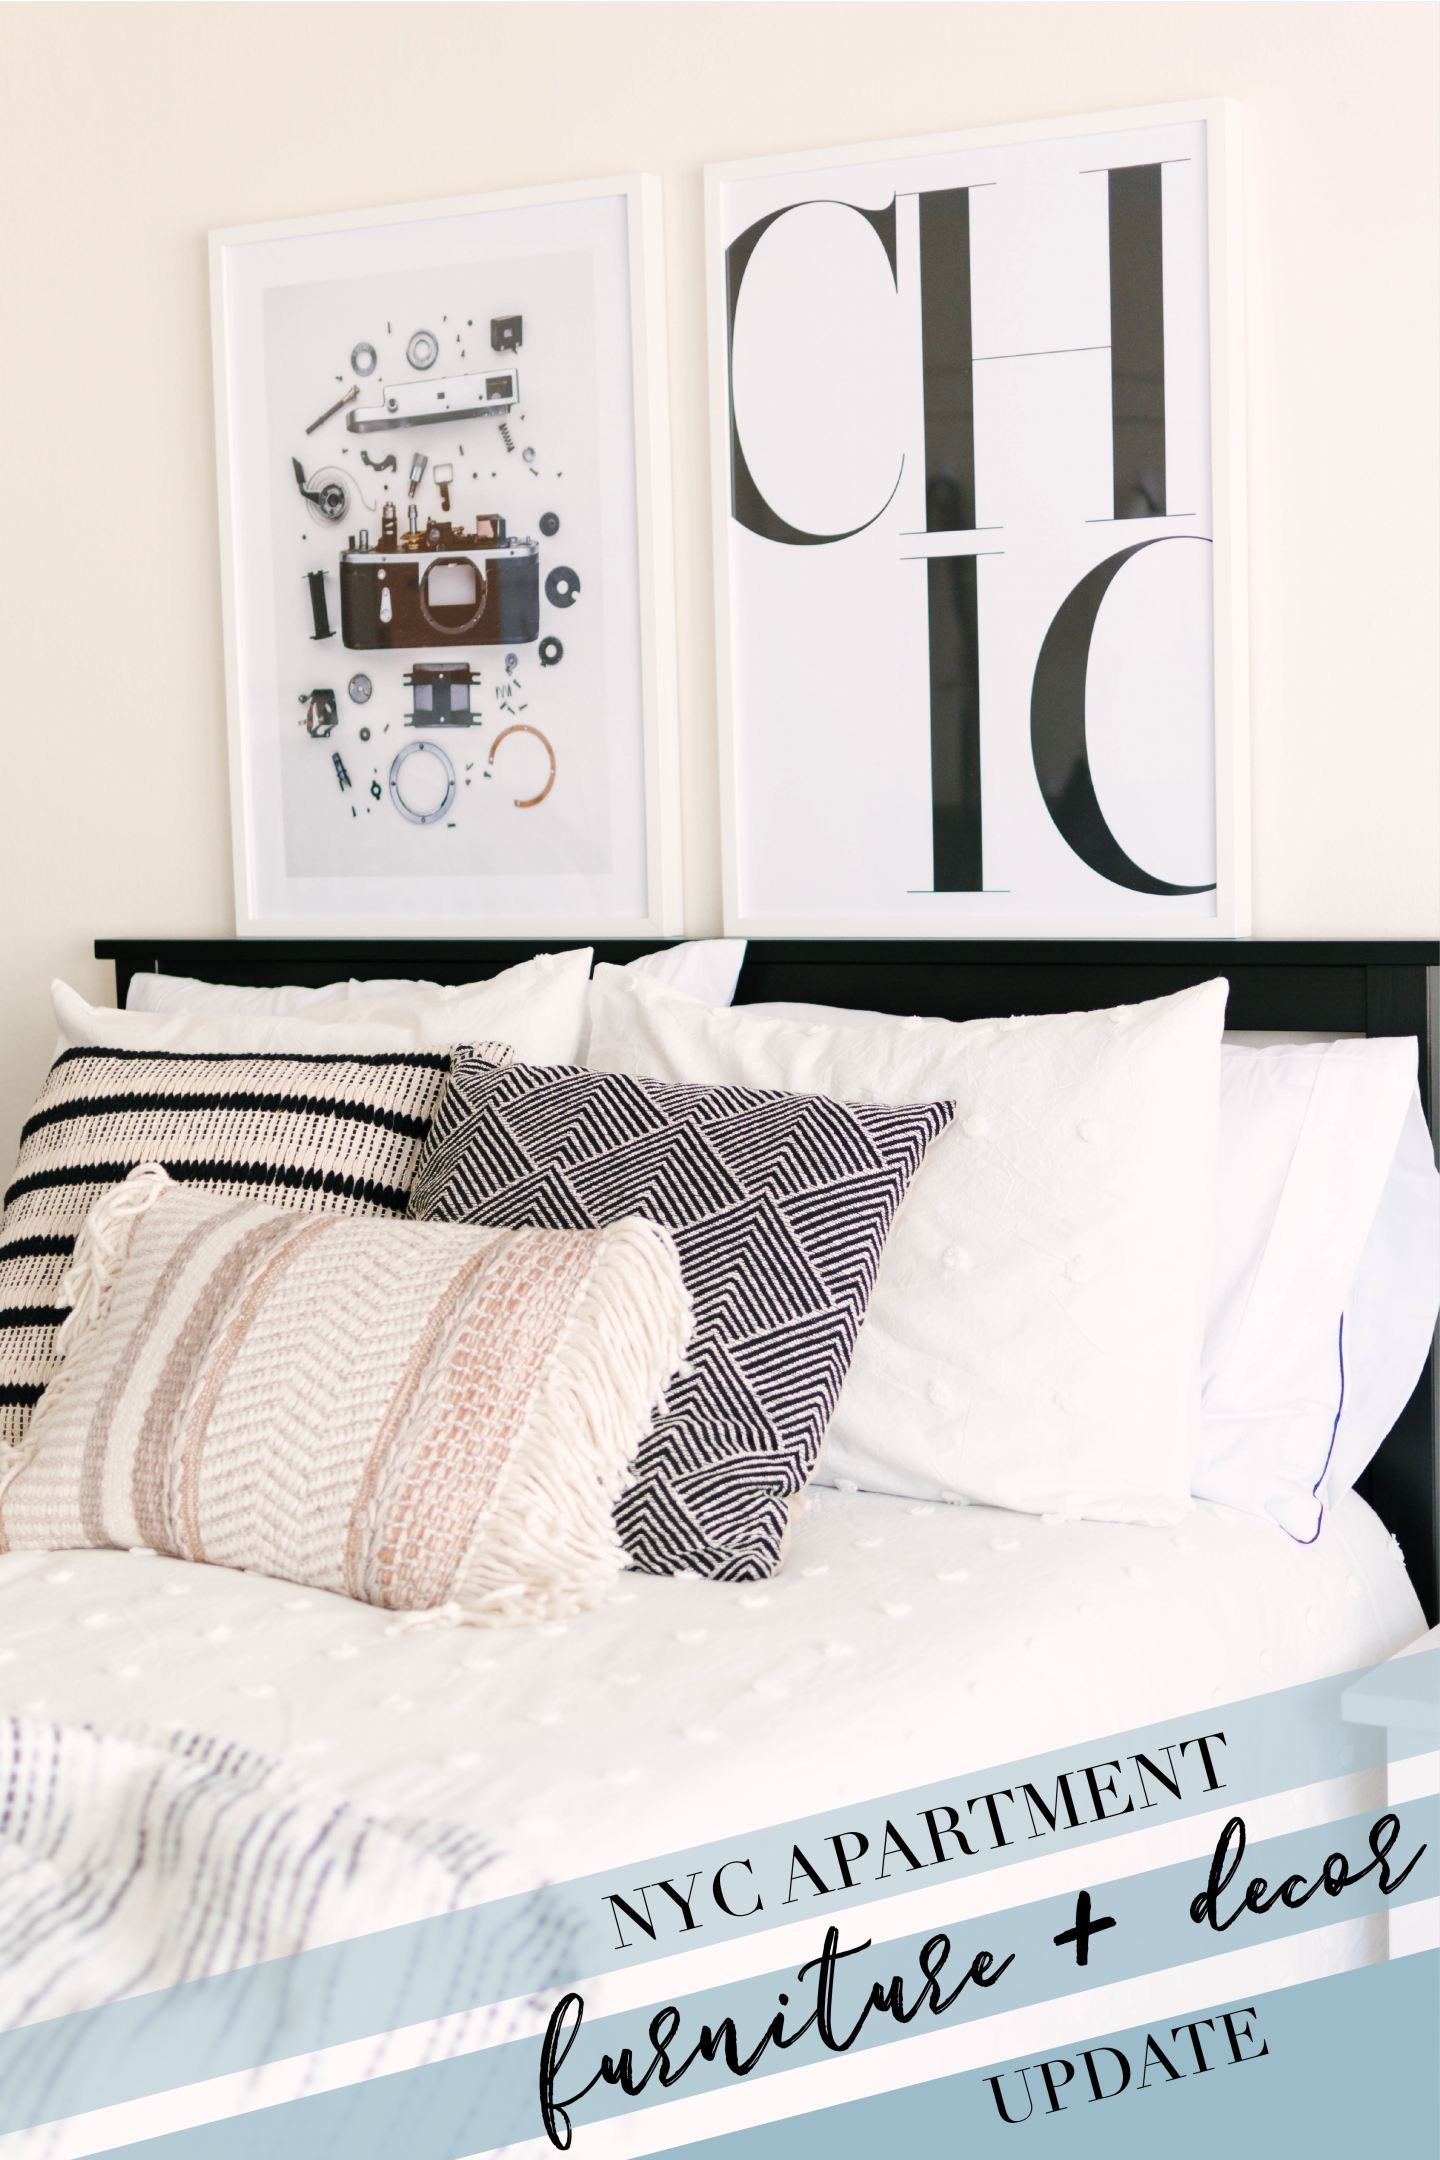 NYC Apartment Furniture + Decor Update! - the swirl